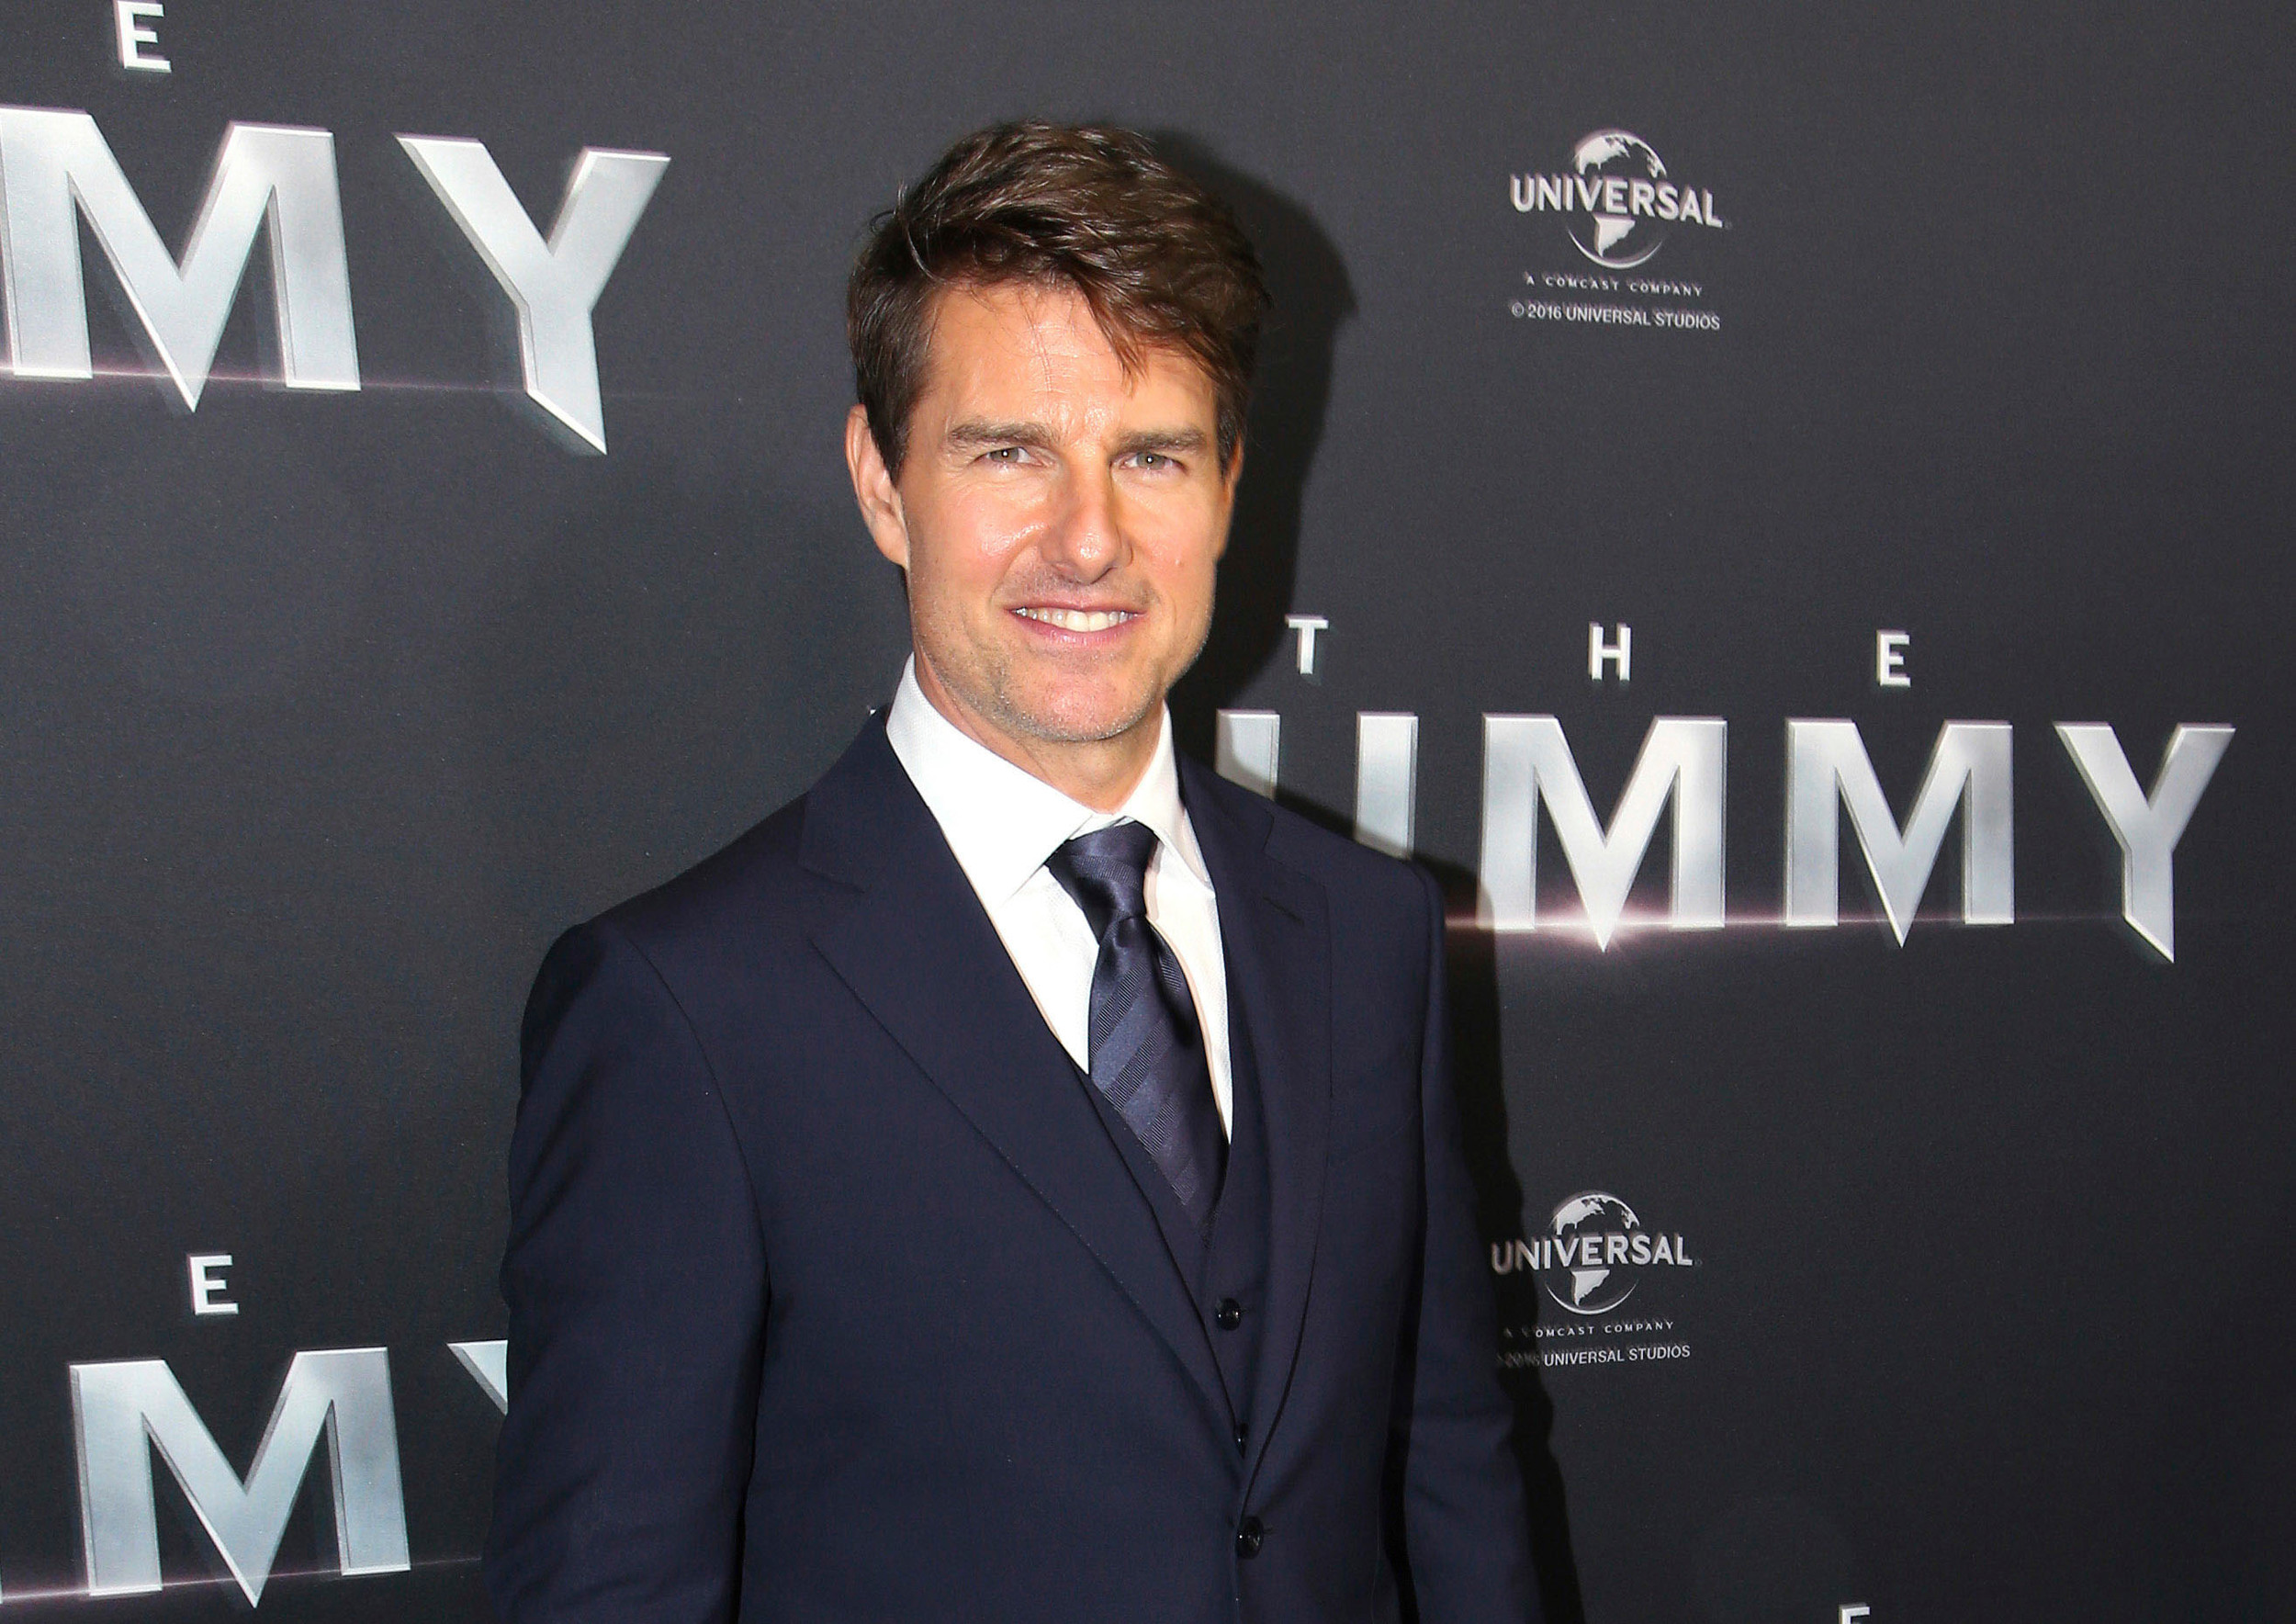 'Top Gun' sequel happening, says Tom Cruise